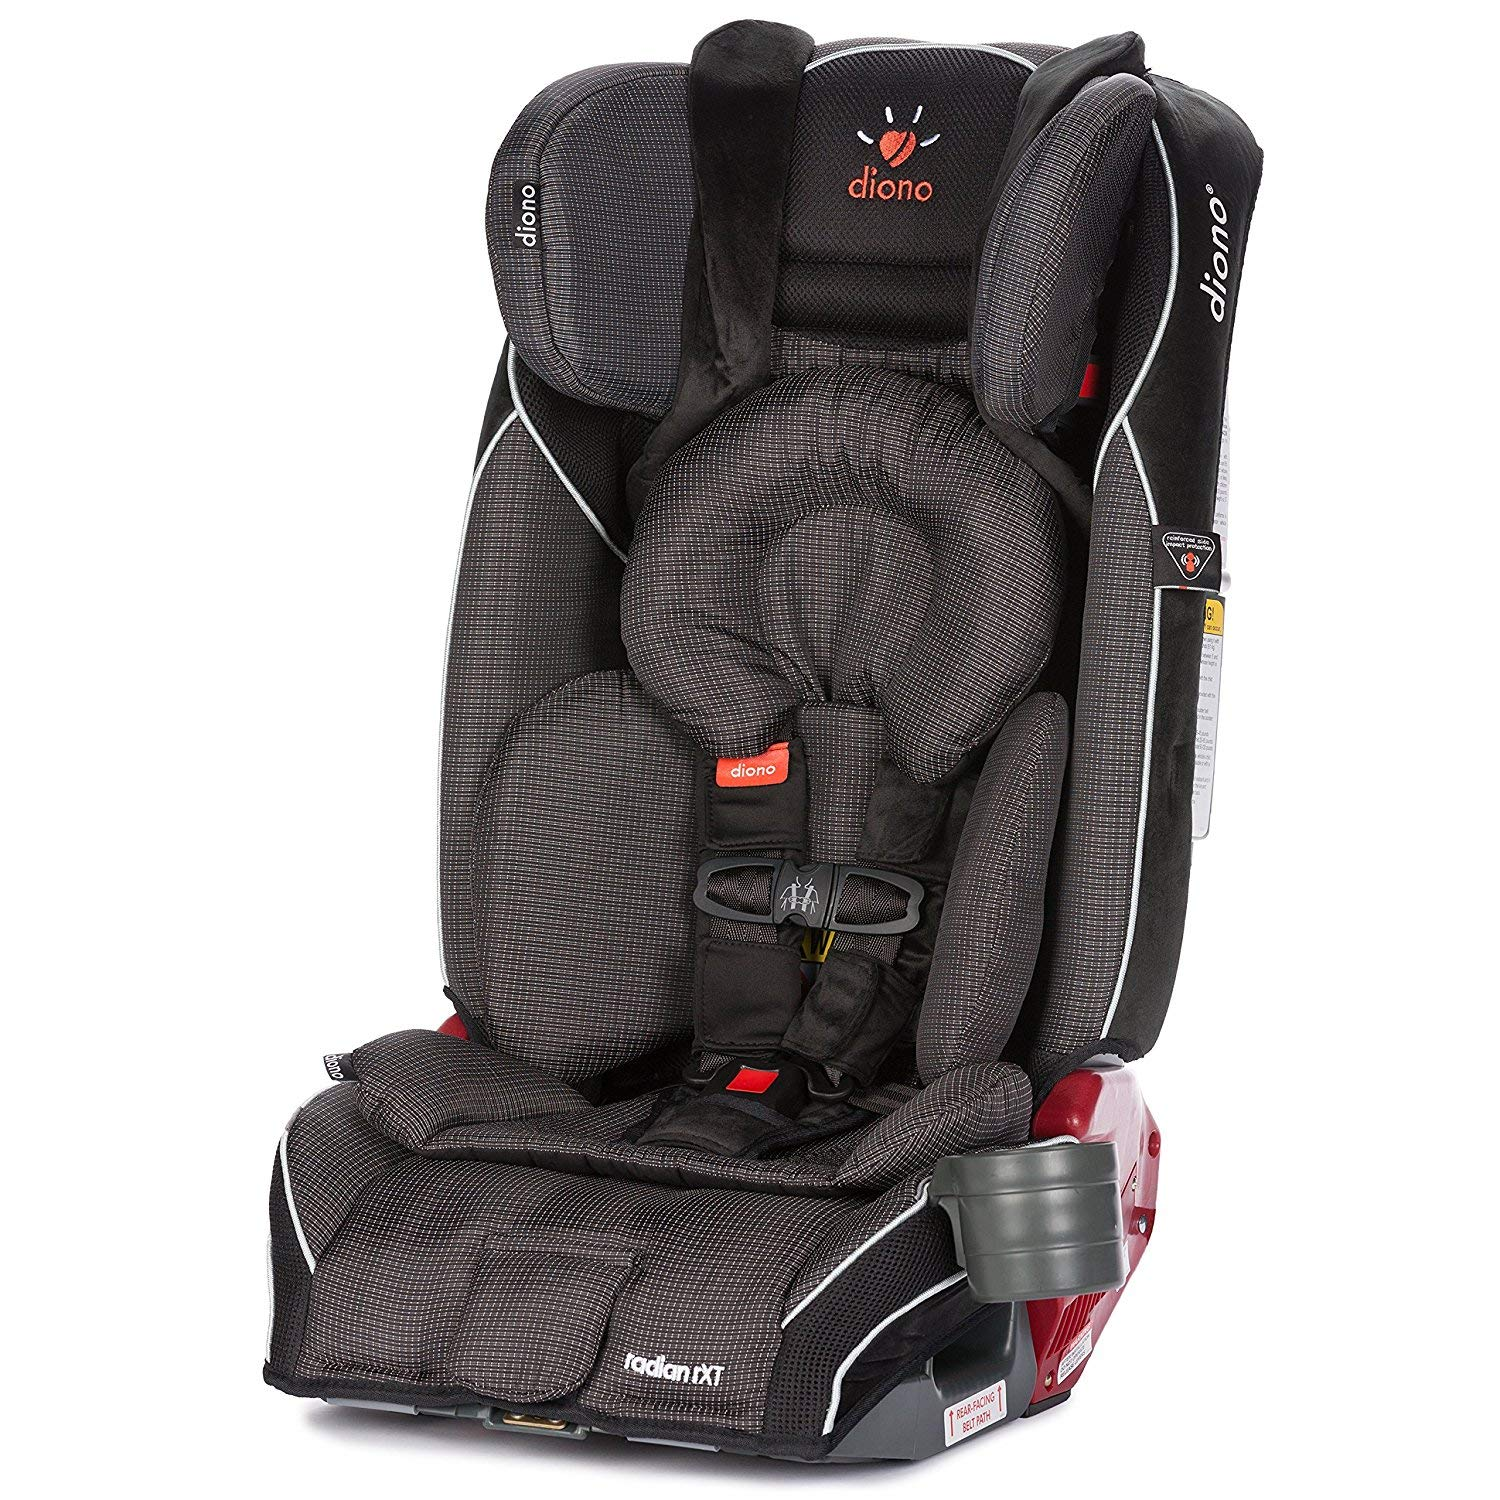 Diono-Radian-RXT-All-in-One-Convertible-Car-Seat-2020